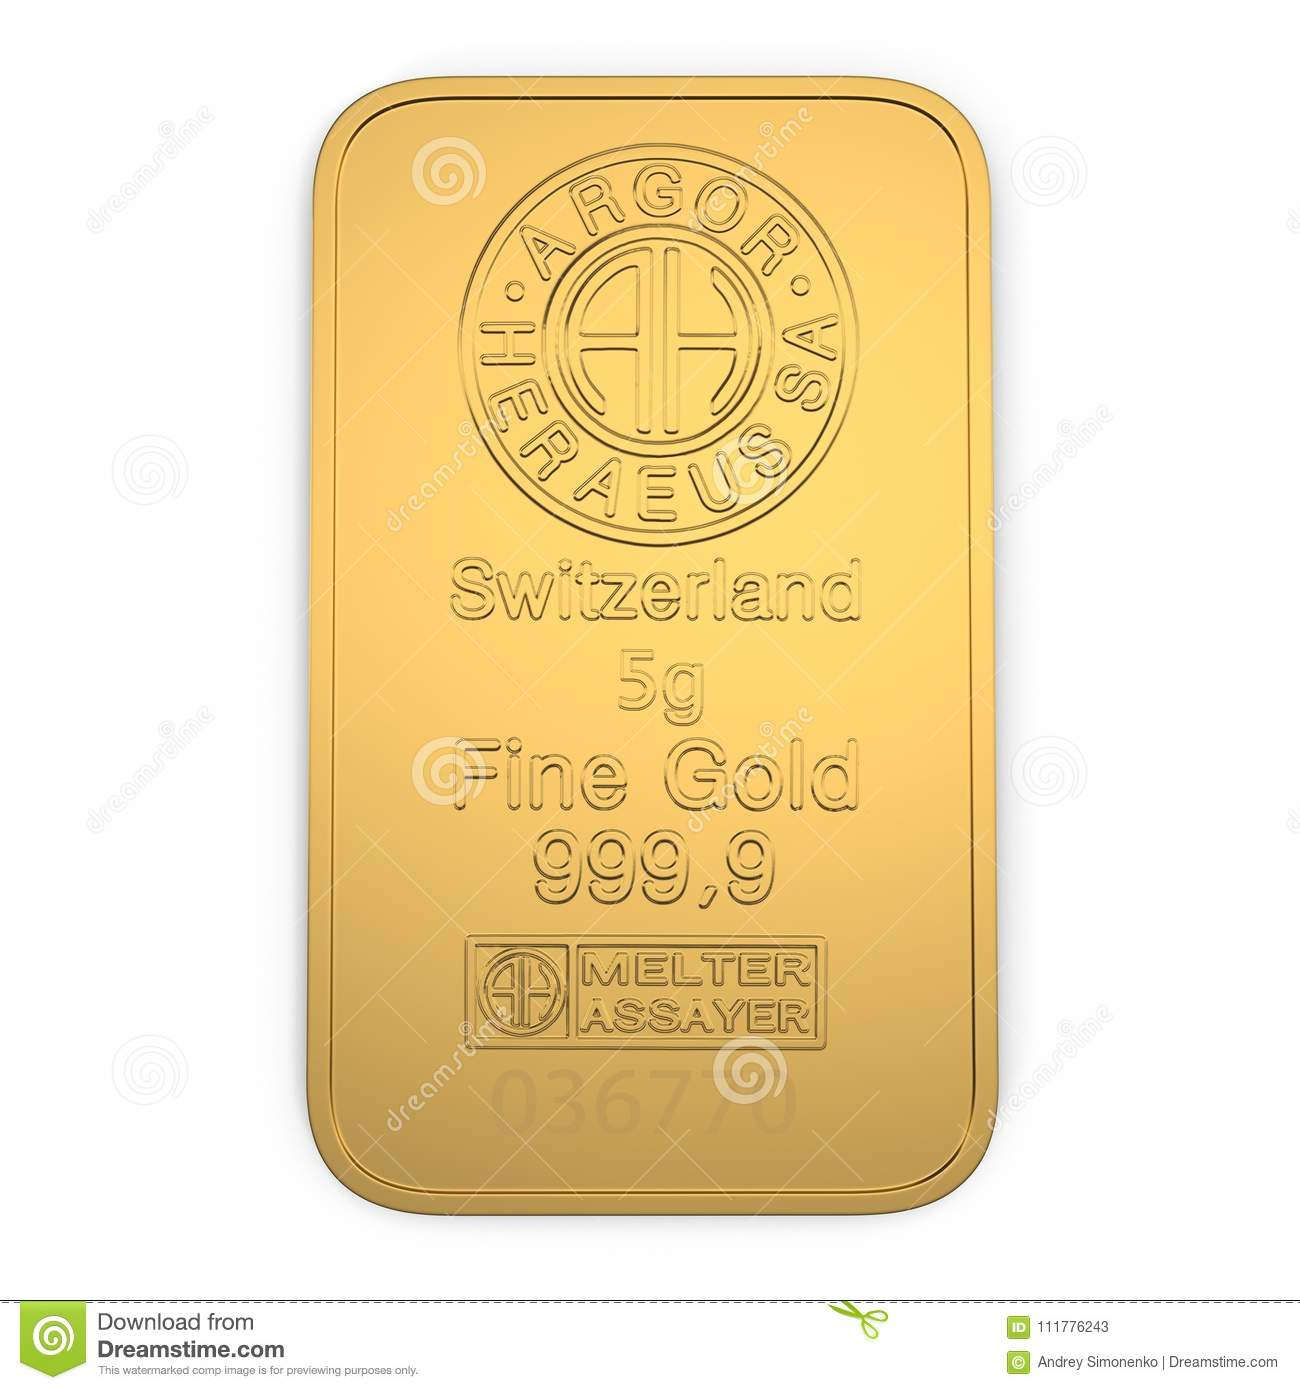 Gold bar 5g isolated on white. Top view. 3D illustration